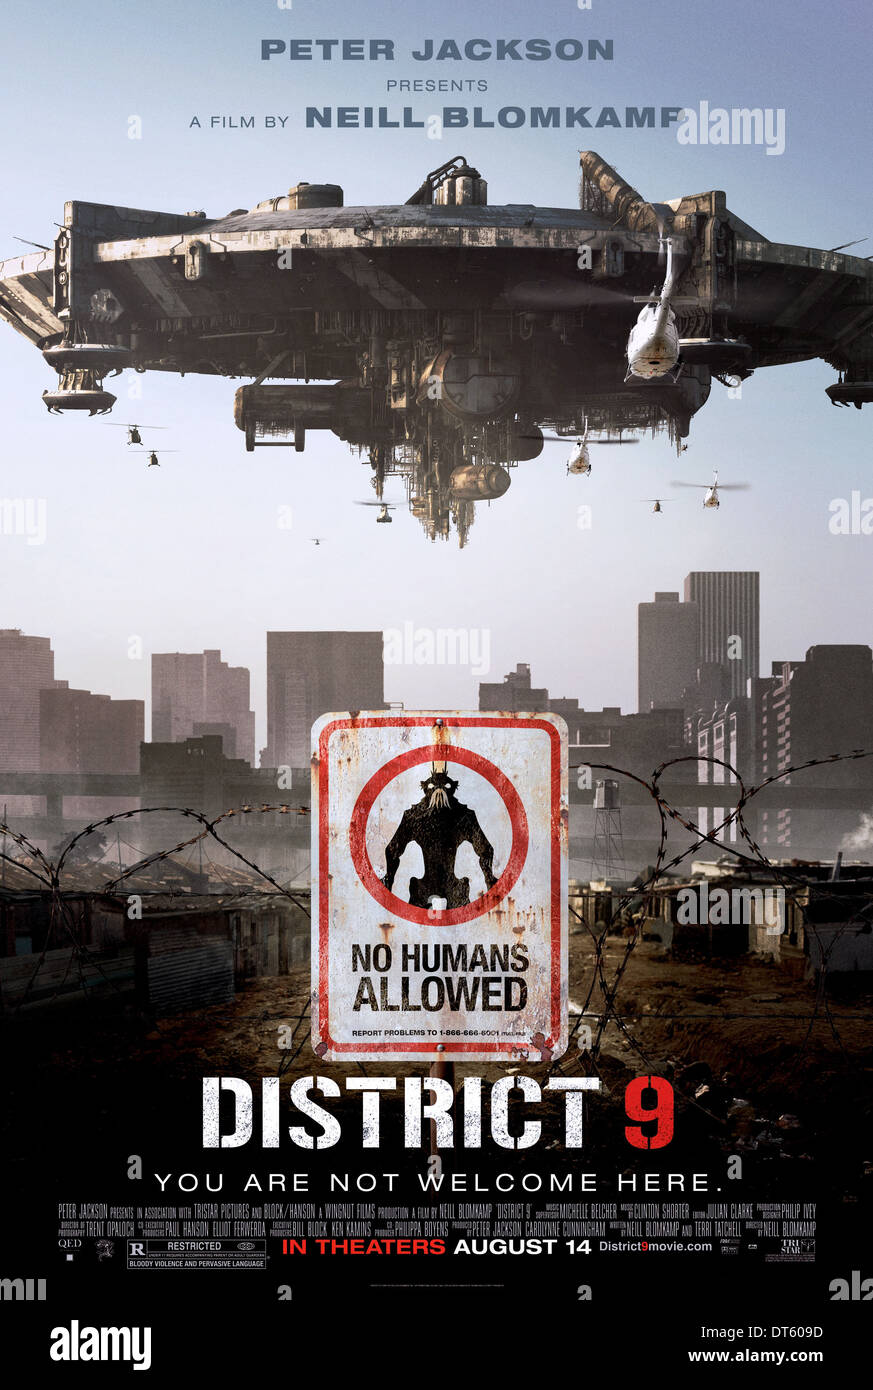 SPACECRAFT POSTER DISTRICT 9 (2009) - Stock Image